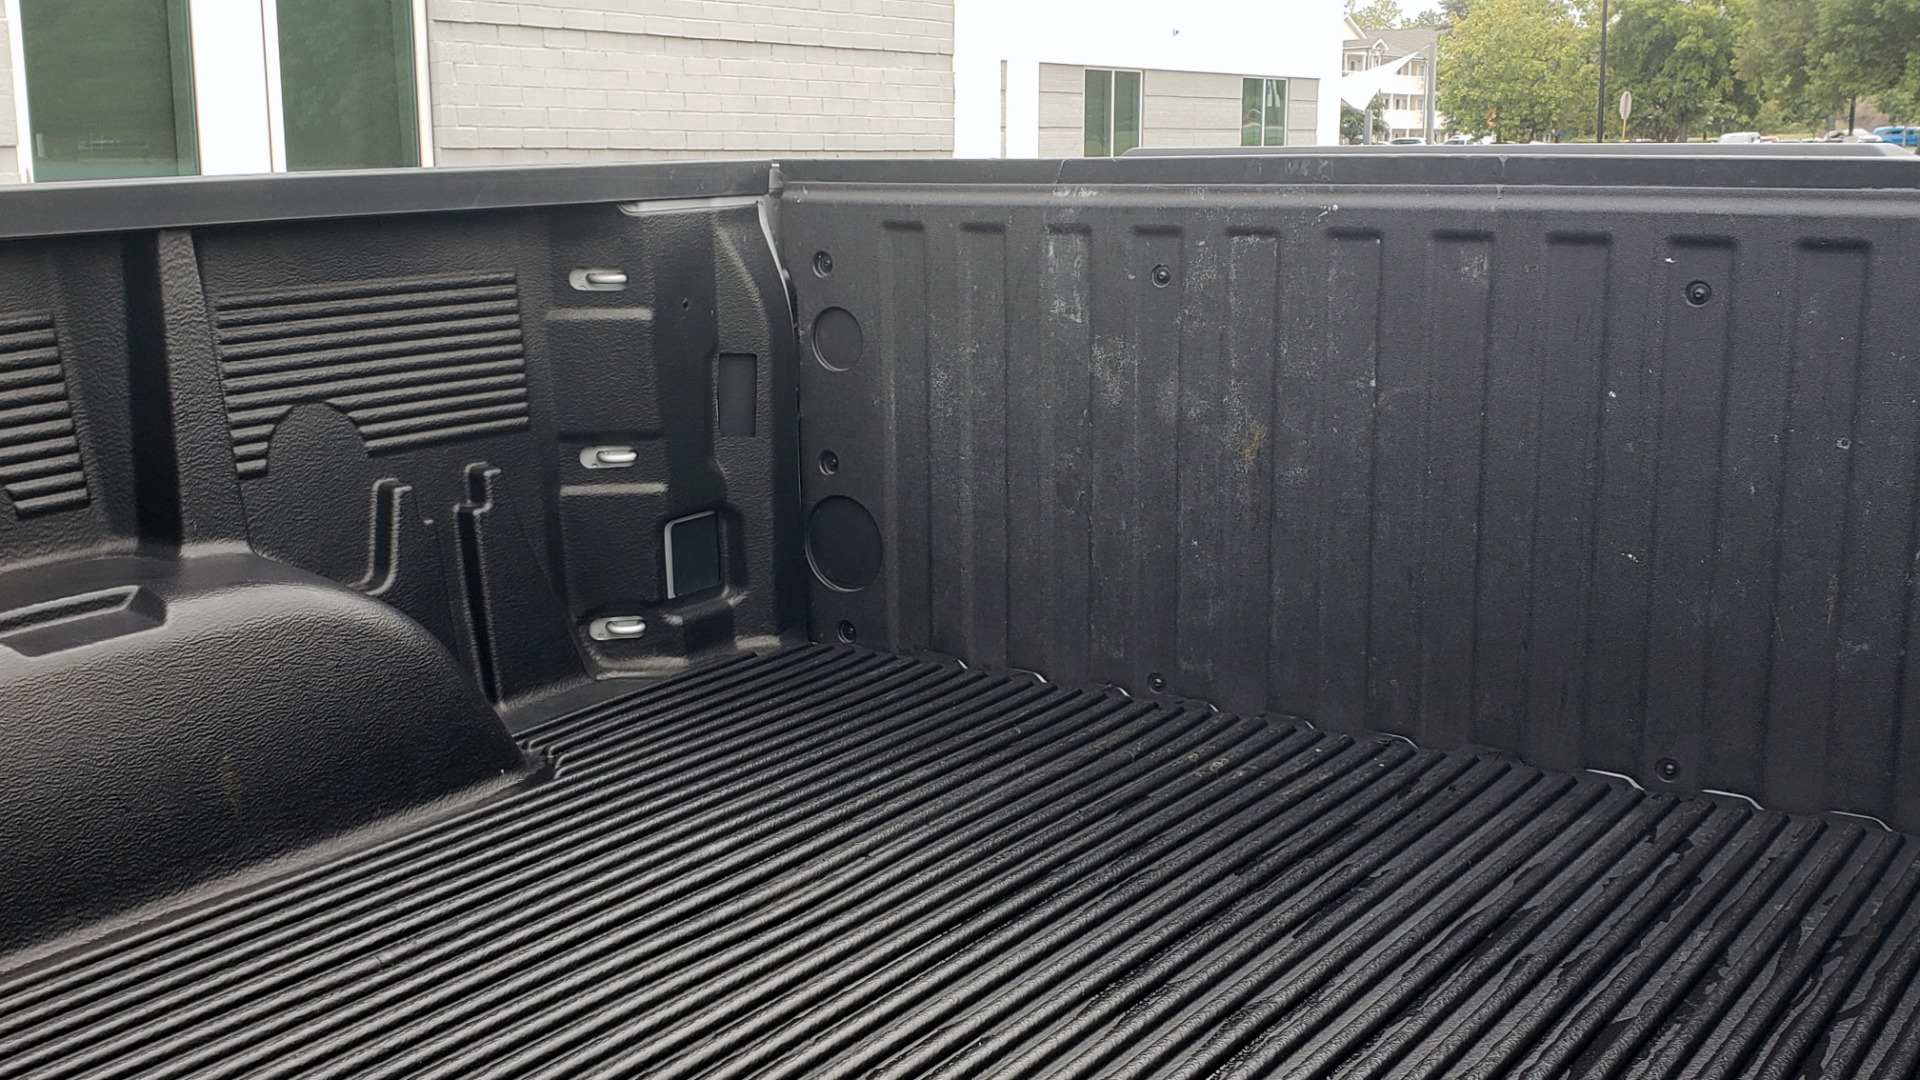 Used 2020 Chevrolet SILVERADO 1500 LT 4WD DOUBLECAB 147 WB / 5.3L V8 / BEDLINER / REARVIEW for sale $41,995 at Formula Imports in Charlotte NC 28227 10